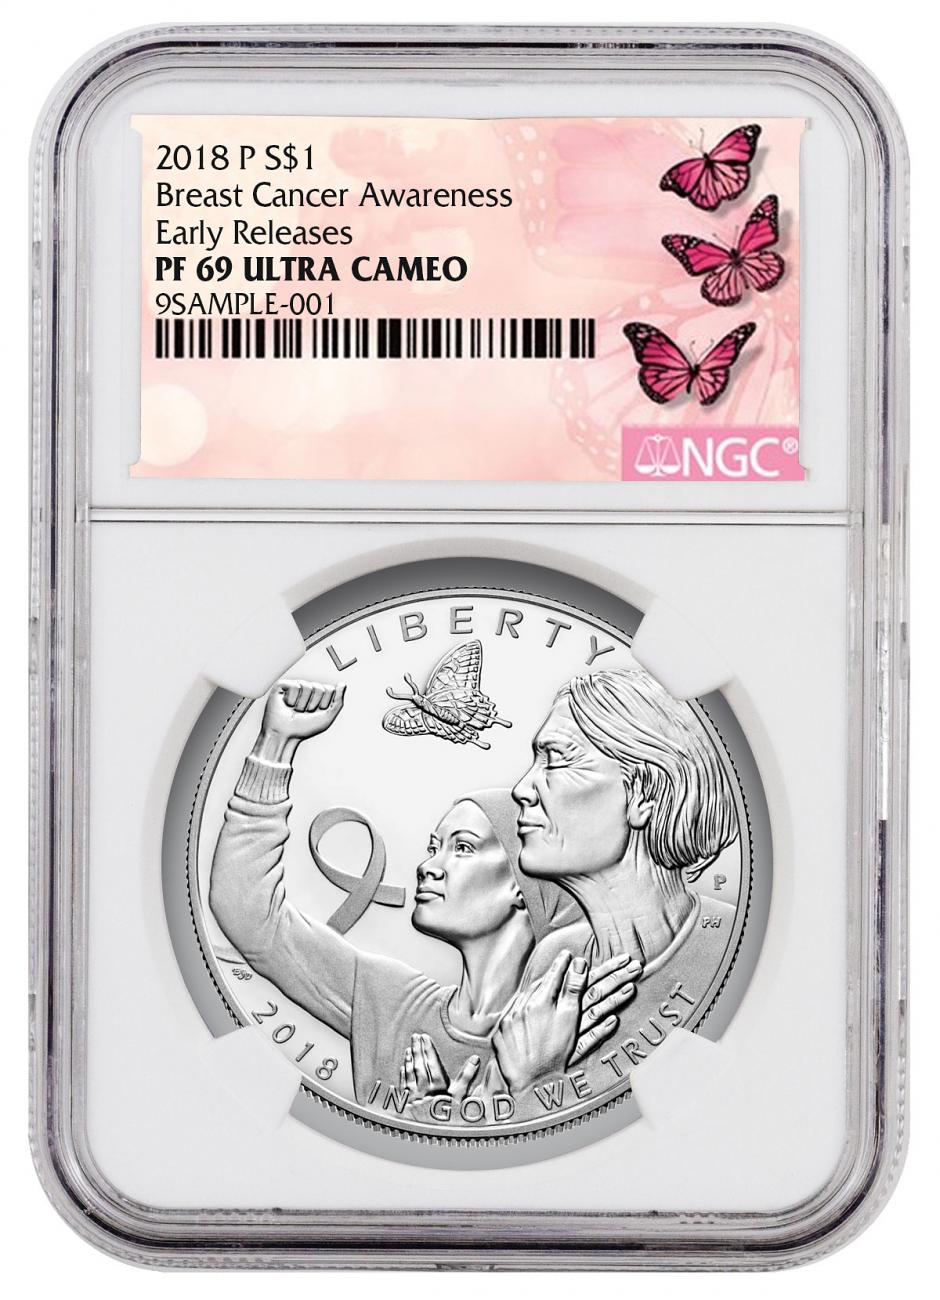 2018-P Breast Cancer Awareness Commemorative Silver Dollar Proof Coin NGC PF69 UC ER Breast Cancer Label